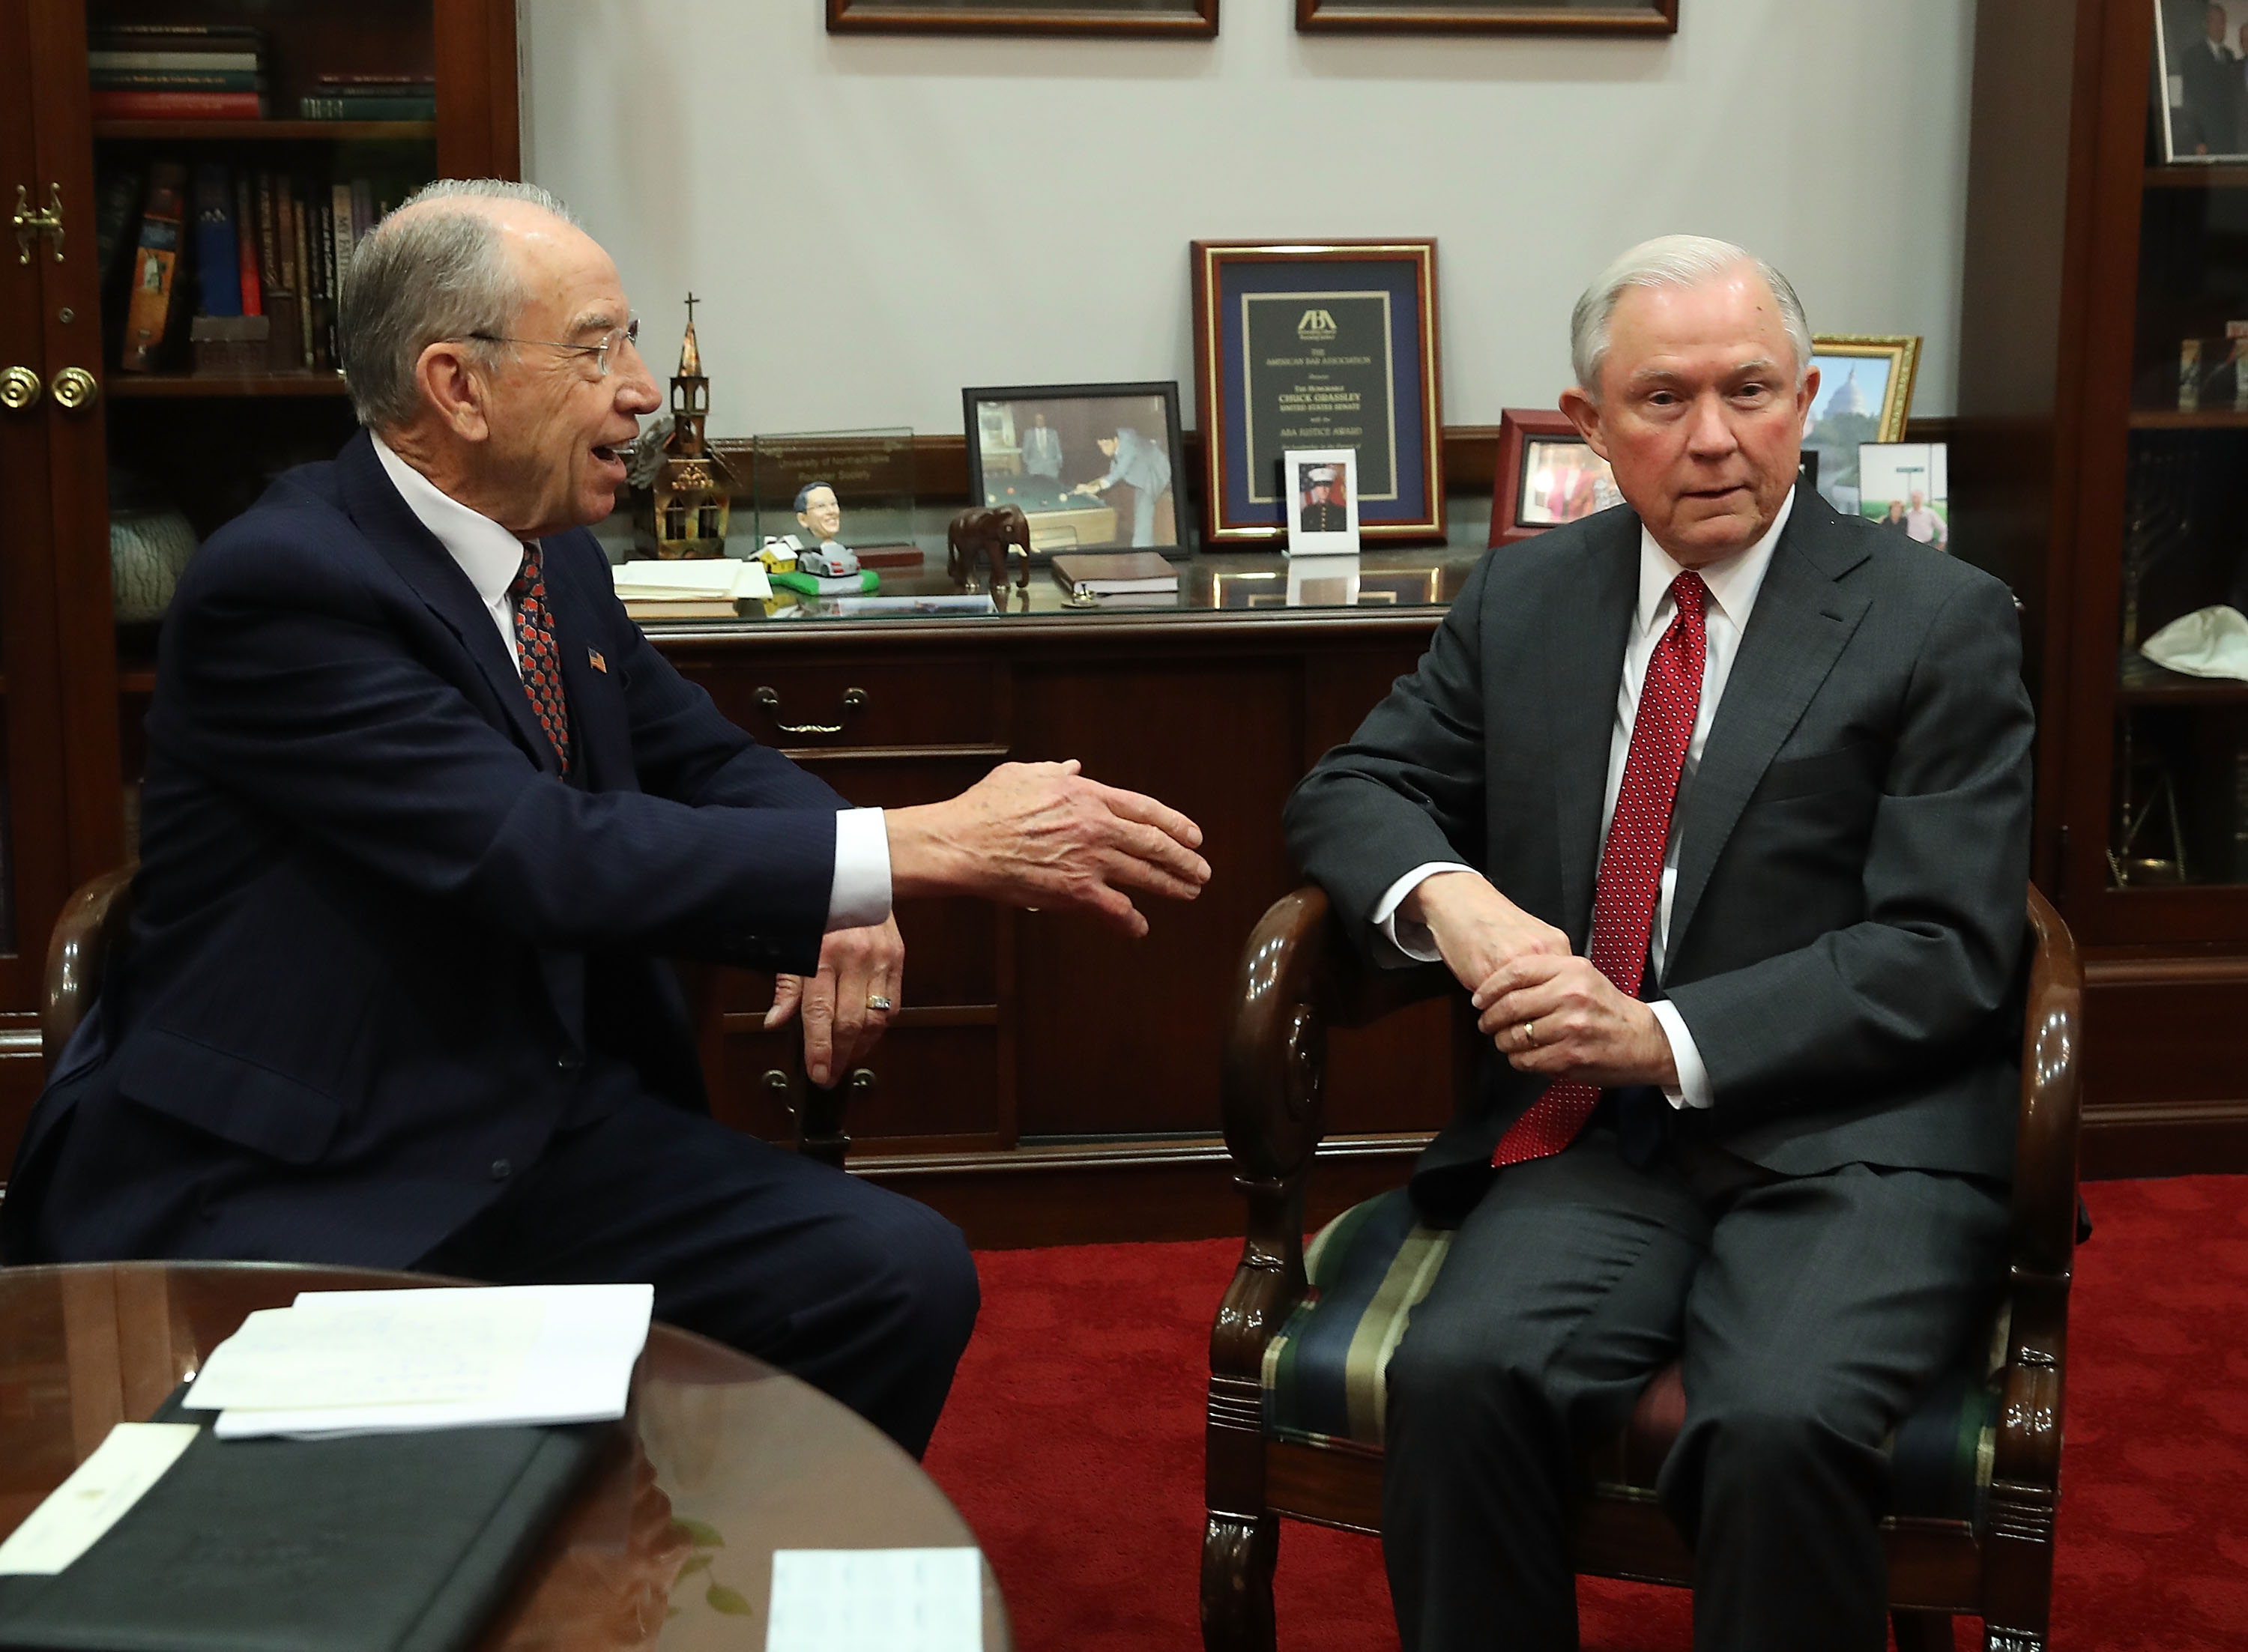 The fight over Jeff Sessions's attorney general nomination ...